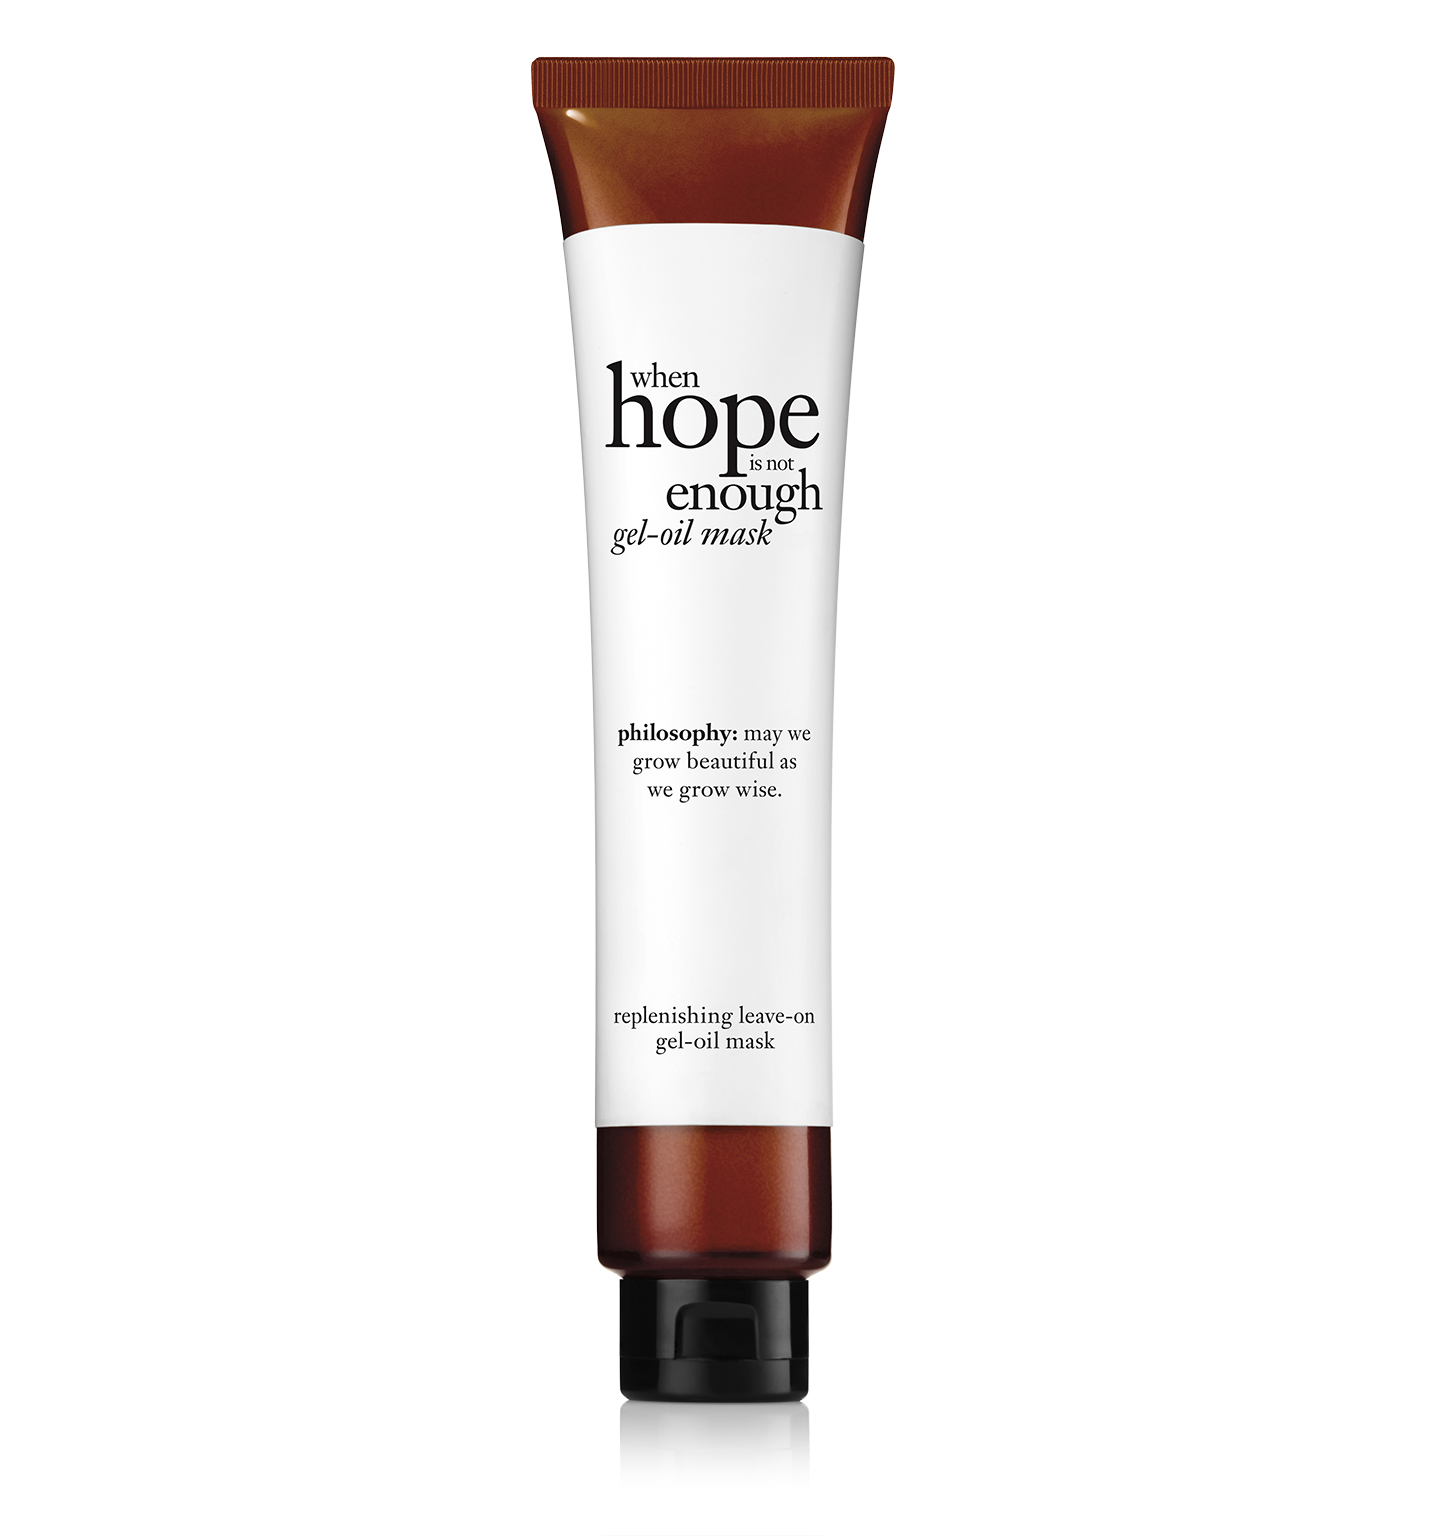 related product products/images/philosophy-whenhopeisnotenoughgeloilmask.jpg